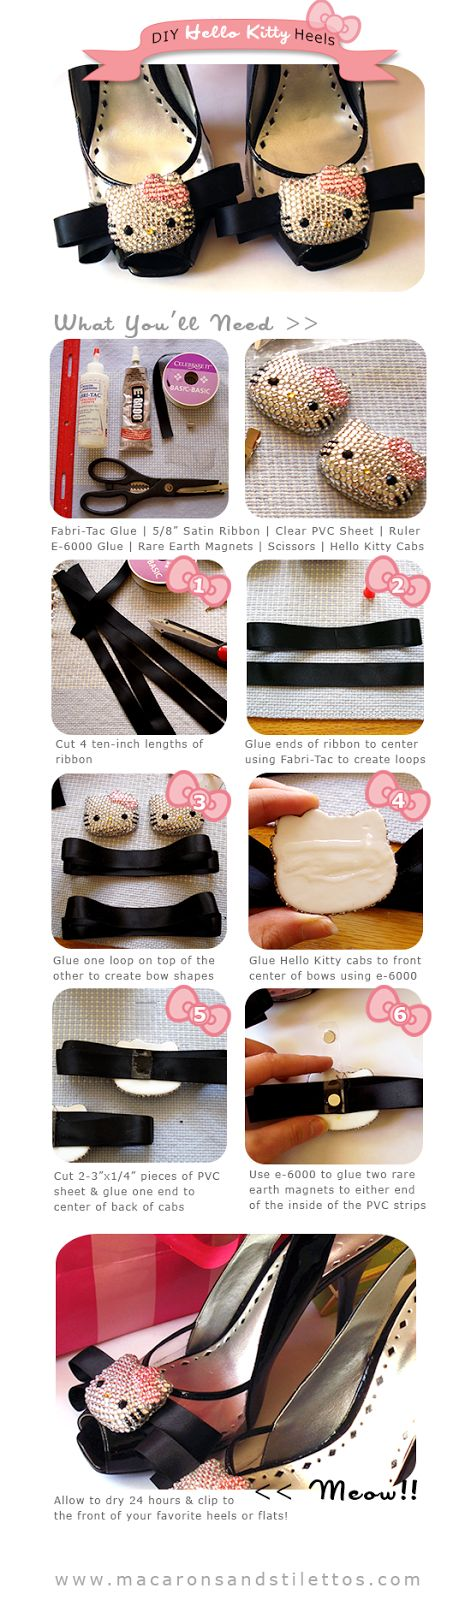 Macarons and Stilettos - For the Love of Kawaii and Fashion: DIY Hello Kitty High Heels Tutorial